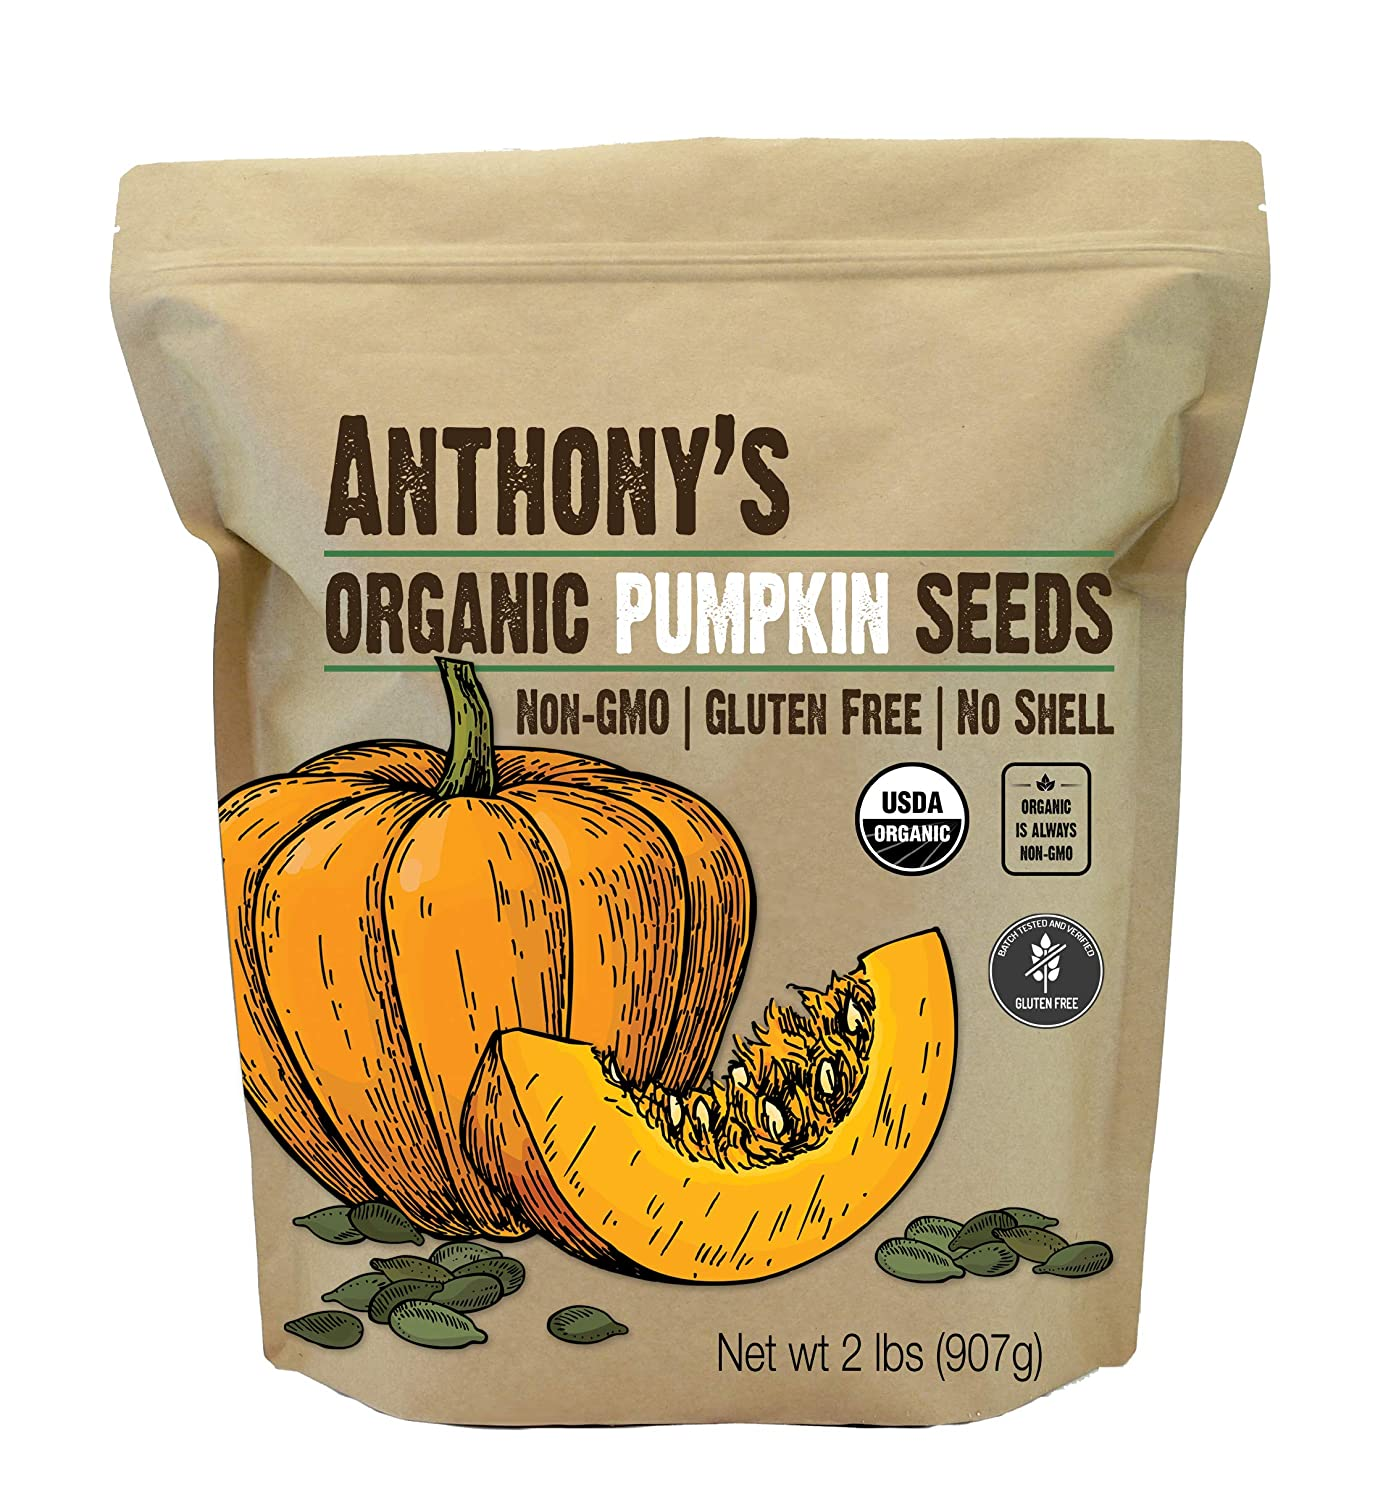 Anthony's Organic Pumpkin Seeds, 2 lb, Gluten Free, Non GMO, No Shell, Unsalted, Keto Friendly